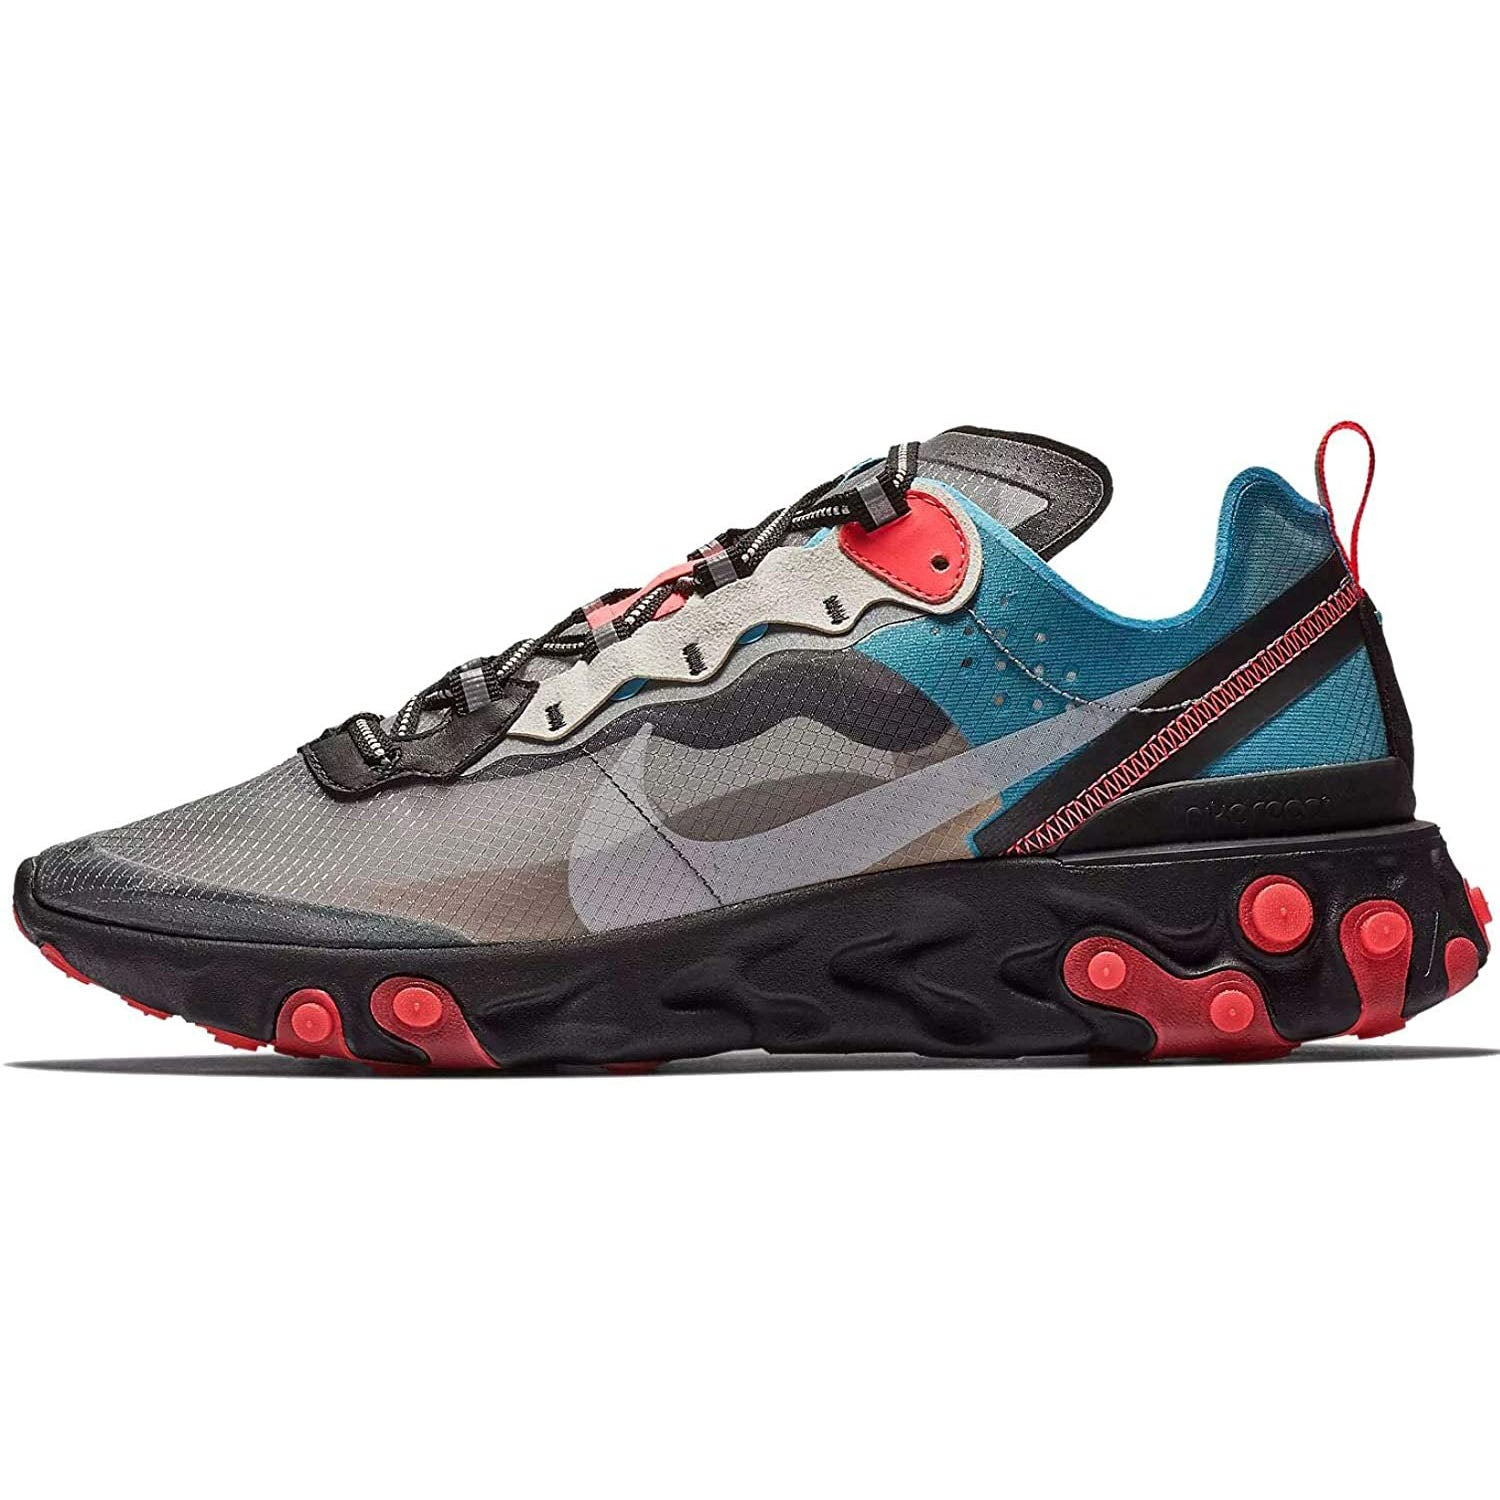 Nike React Element 87 Mens Casual Running Shoes Aq1090-001